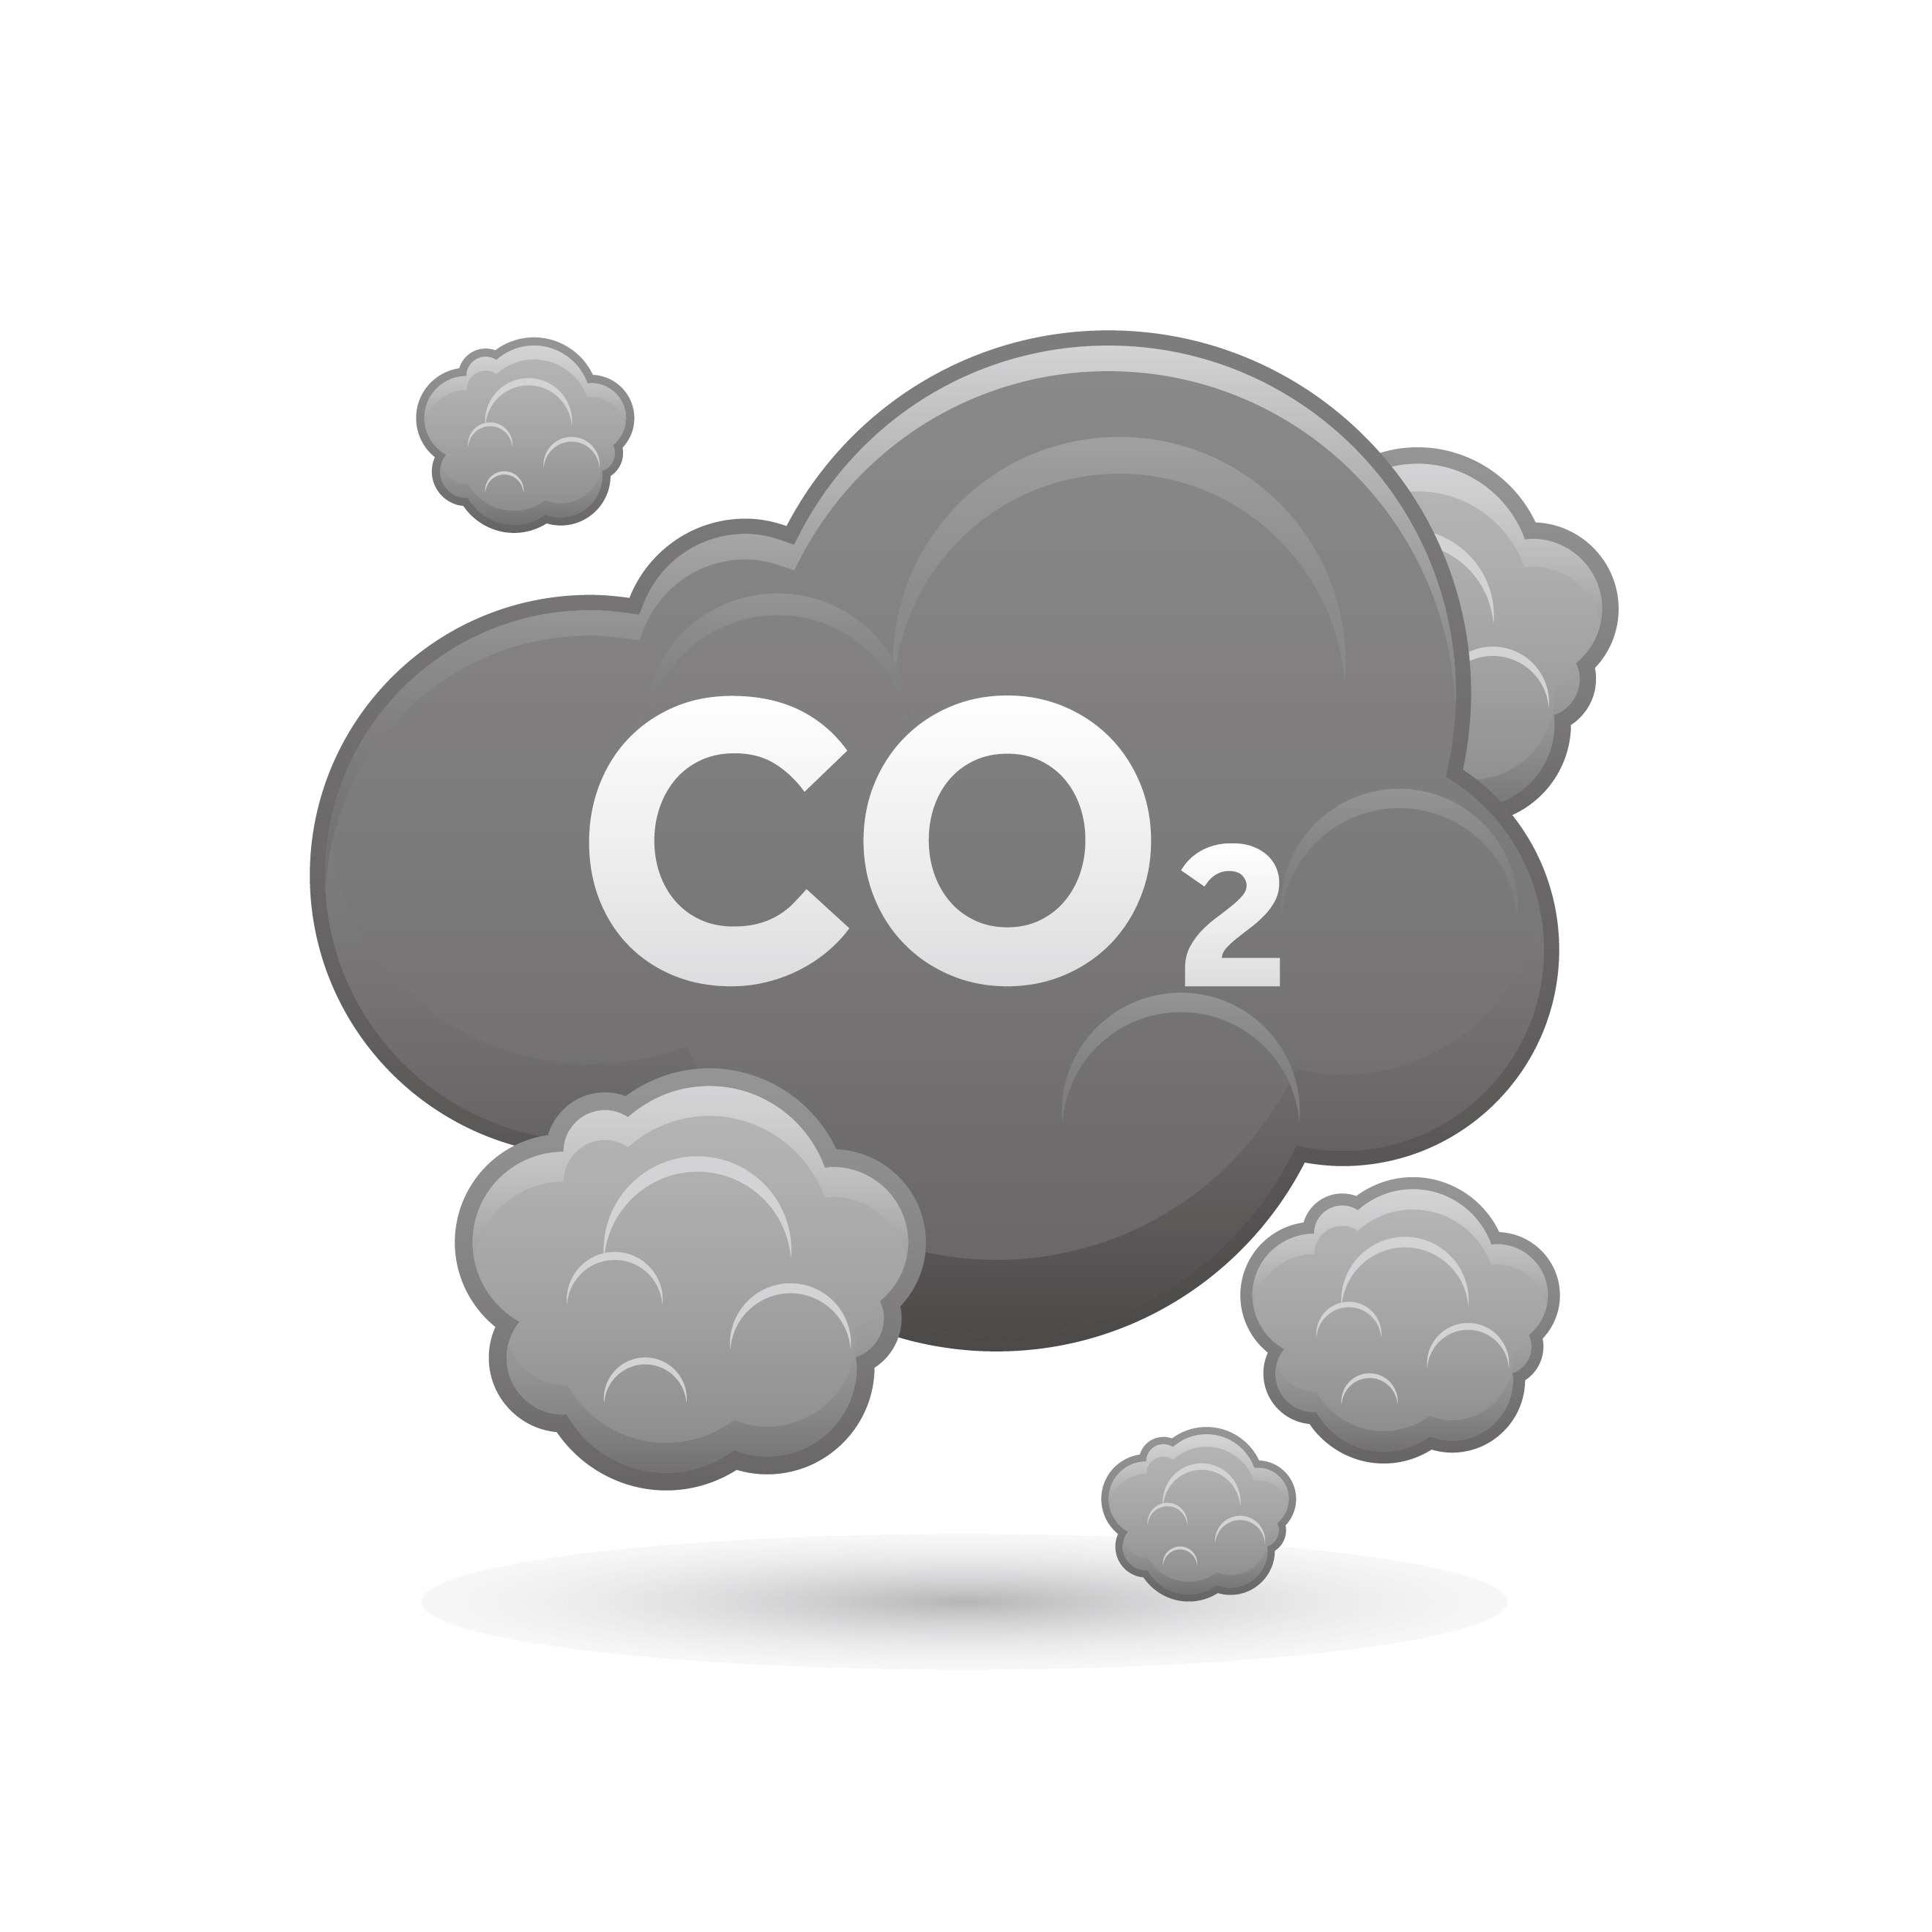 Clouds clipart polluted. Carbon dioxide air pollution